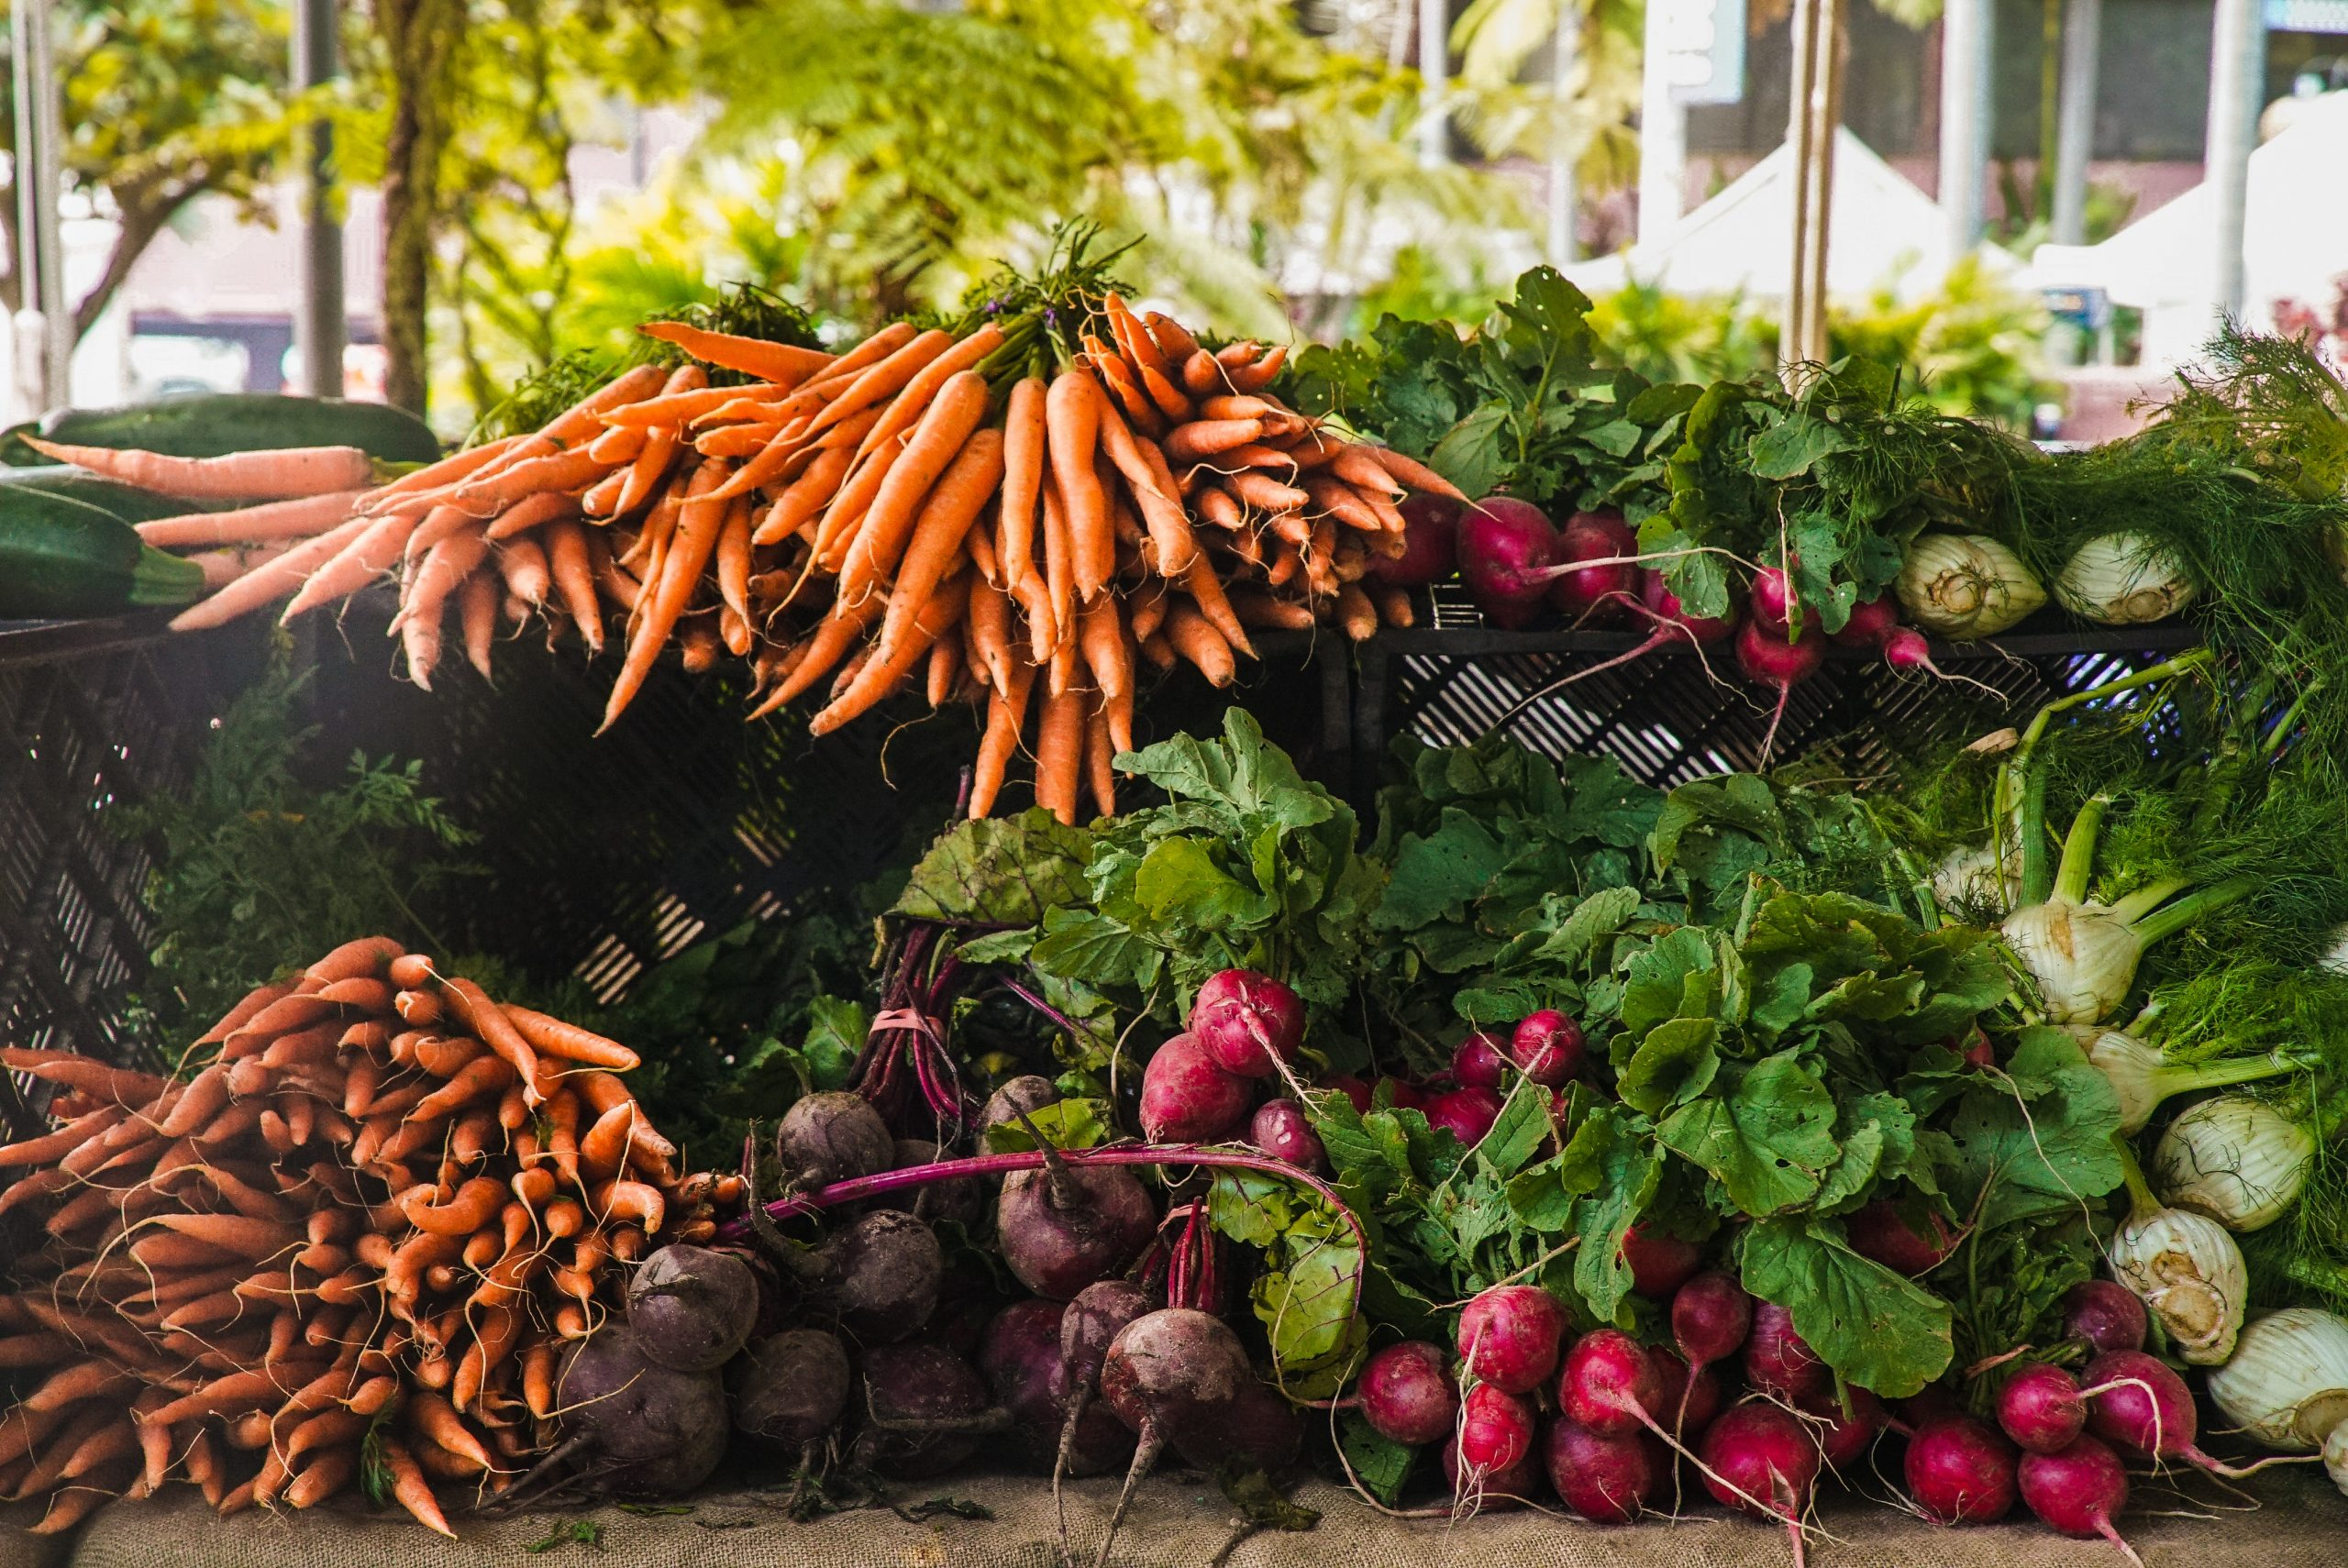 Piles of vegetables as an example of good nutrition; common nutritional mistakes.